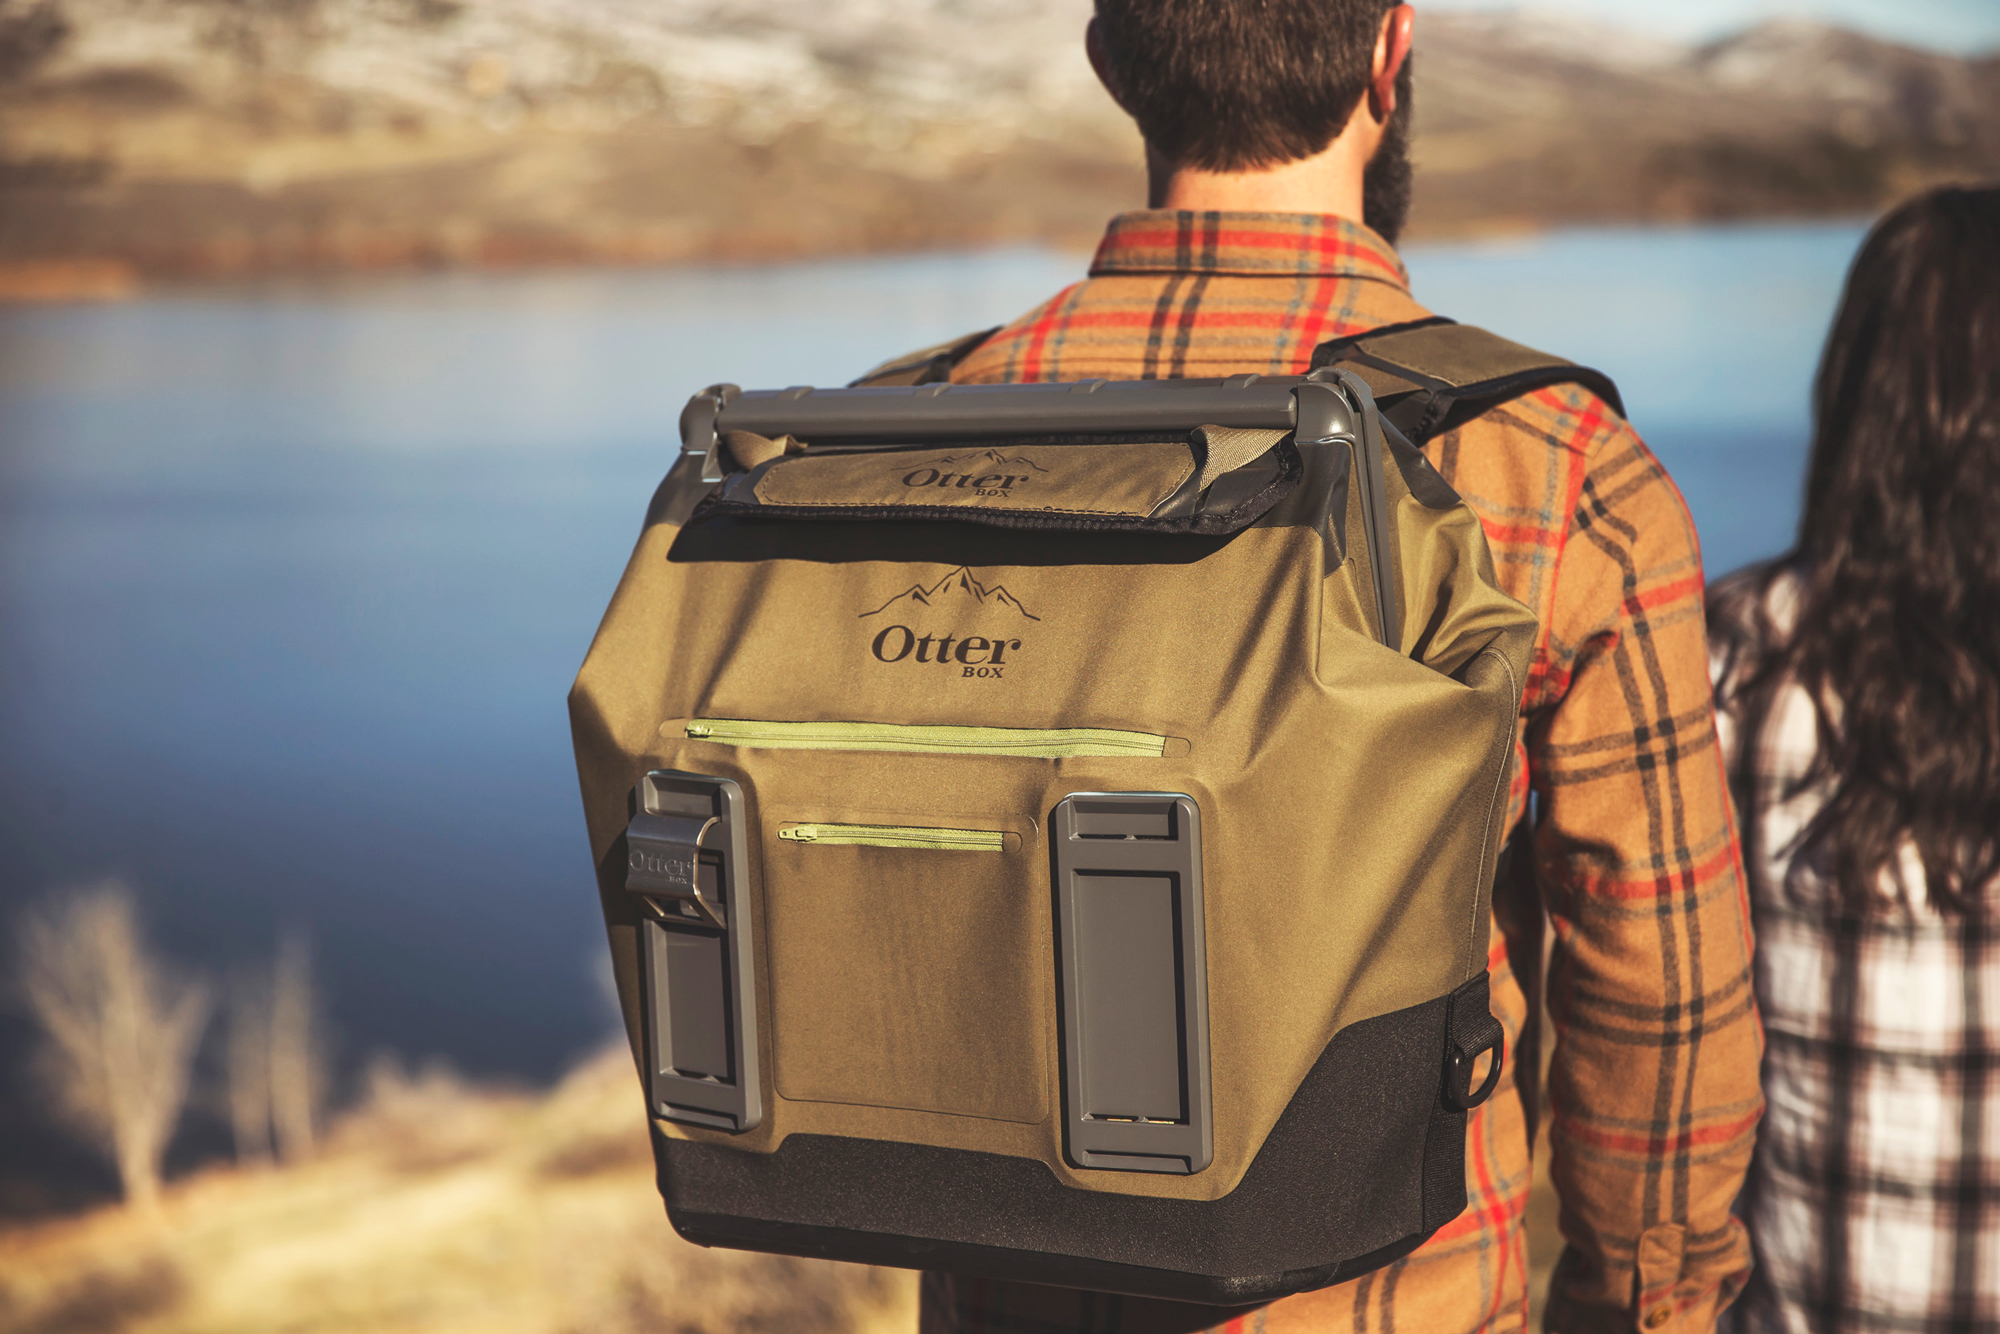 sale retailer 05012 7dacd Soft Carry: Otterbox Launches Backpack Coolers | Expeds